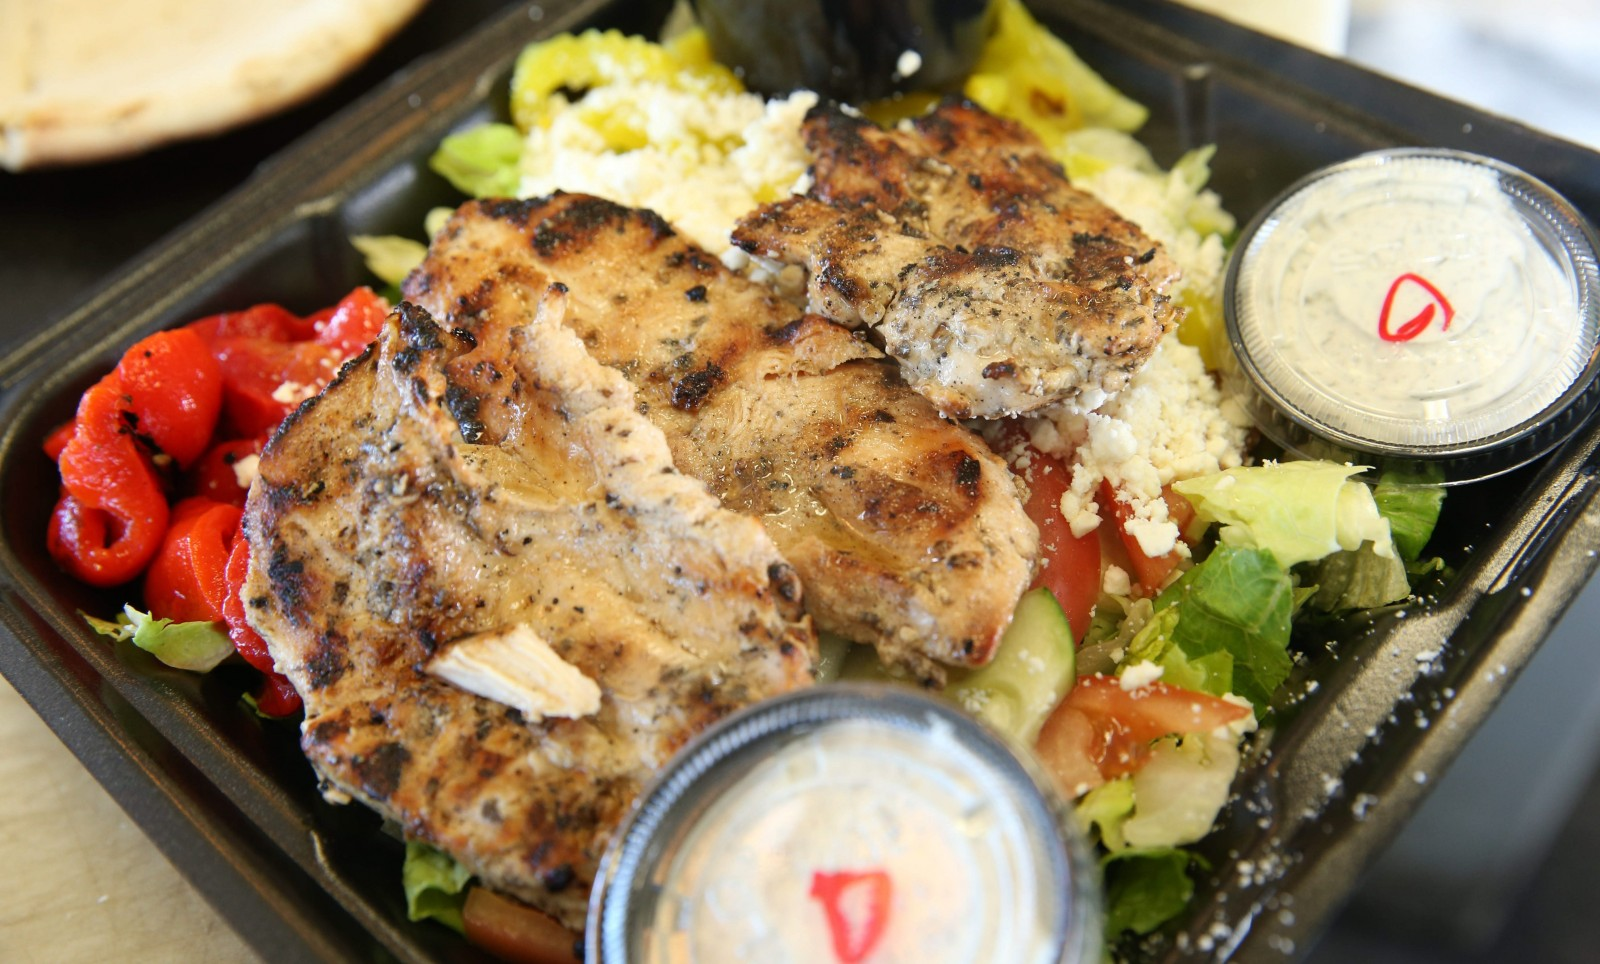 The open chicken souvlaki from Pita Gourmet will available at two Transit Road locations. (Sharon Cantillon/Buffalo News file photo)